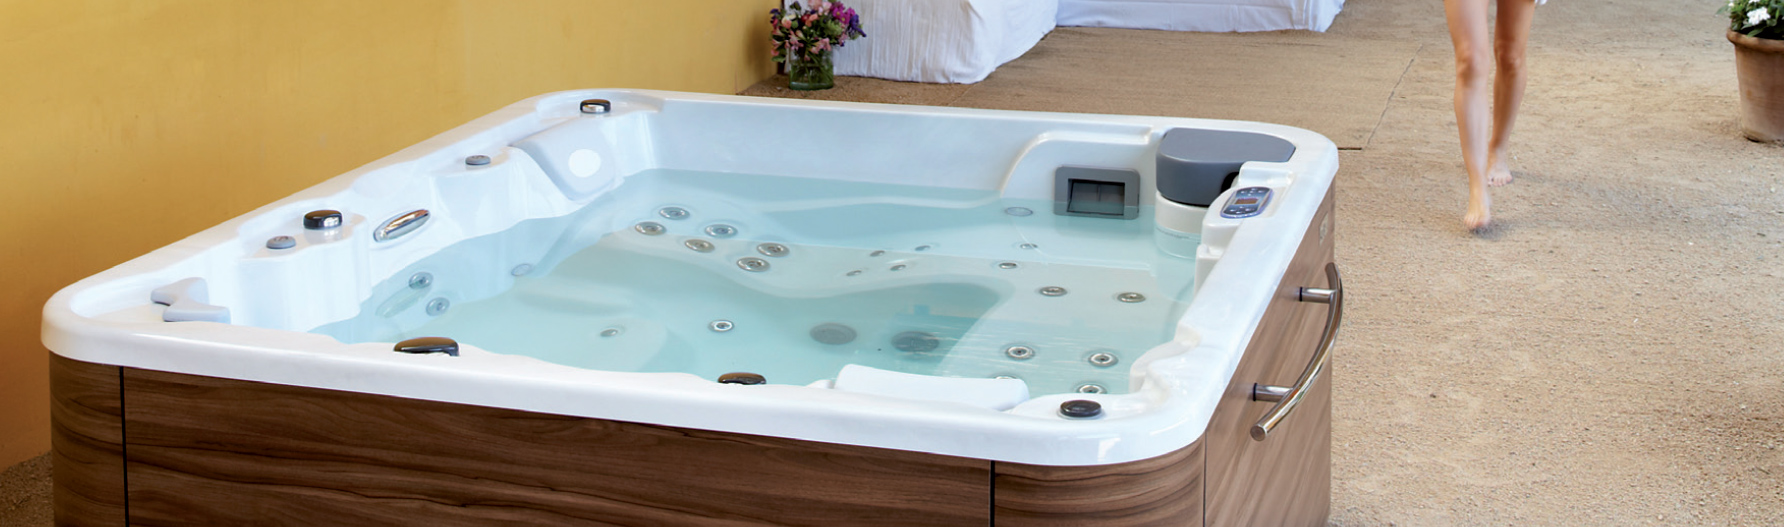 spa ext rieur jacuzzi int rieur spa 5 places spa 6 places spa inox suisse. Black Bedroom Furniture Sets. Home Design Ideas